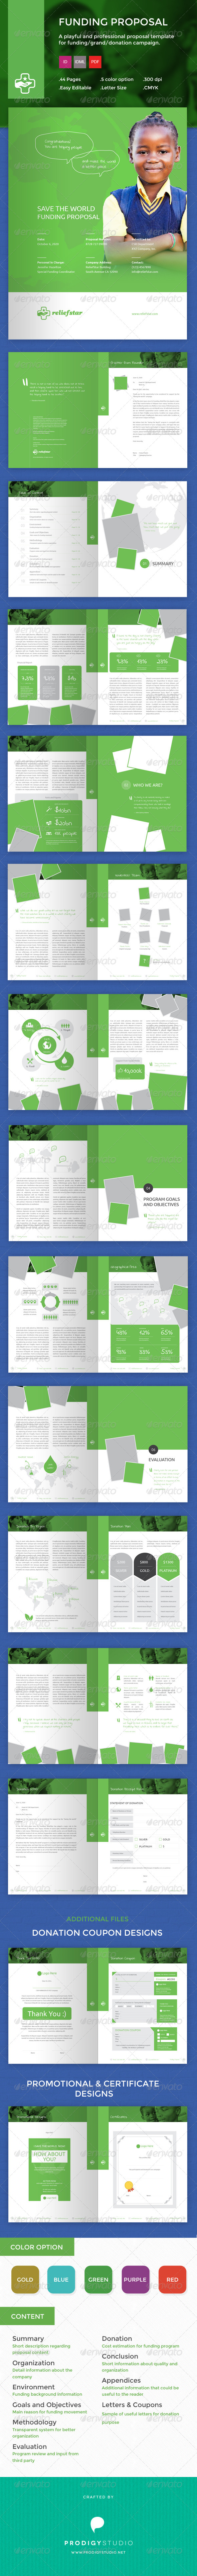 GraphicRiver Funding Charity Donation Grant Proposal 7906265